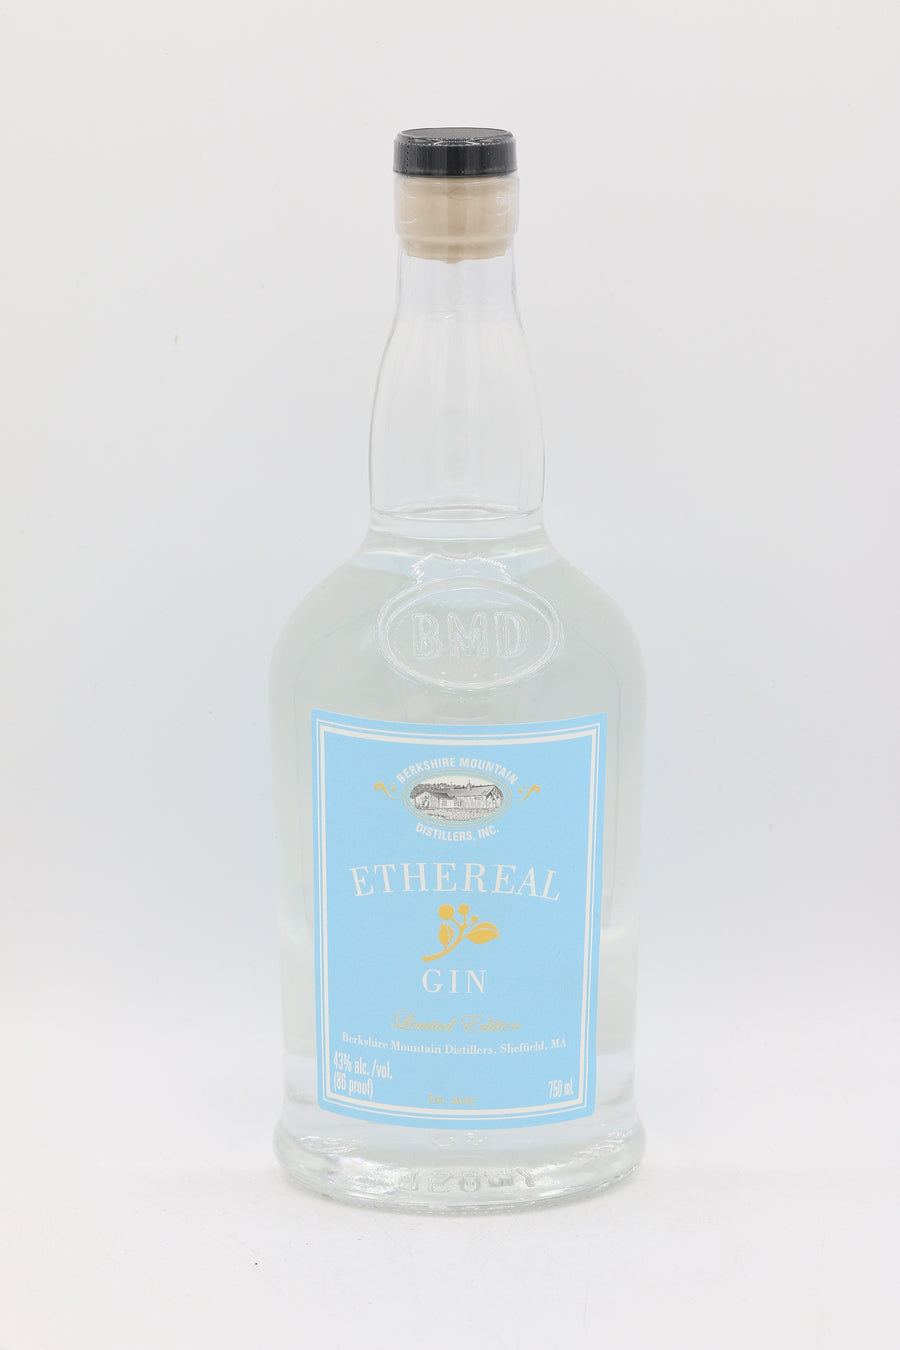 BERKSHIRE BARRELLED ETHEREAL GIN 750ML